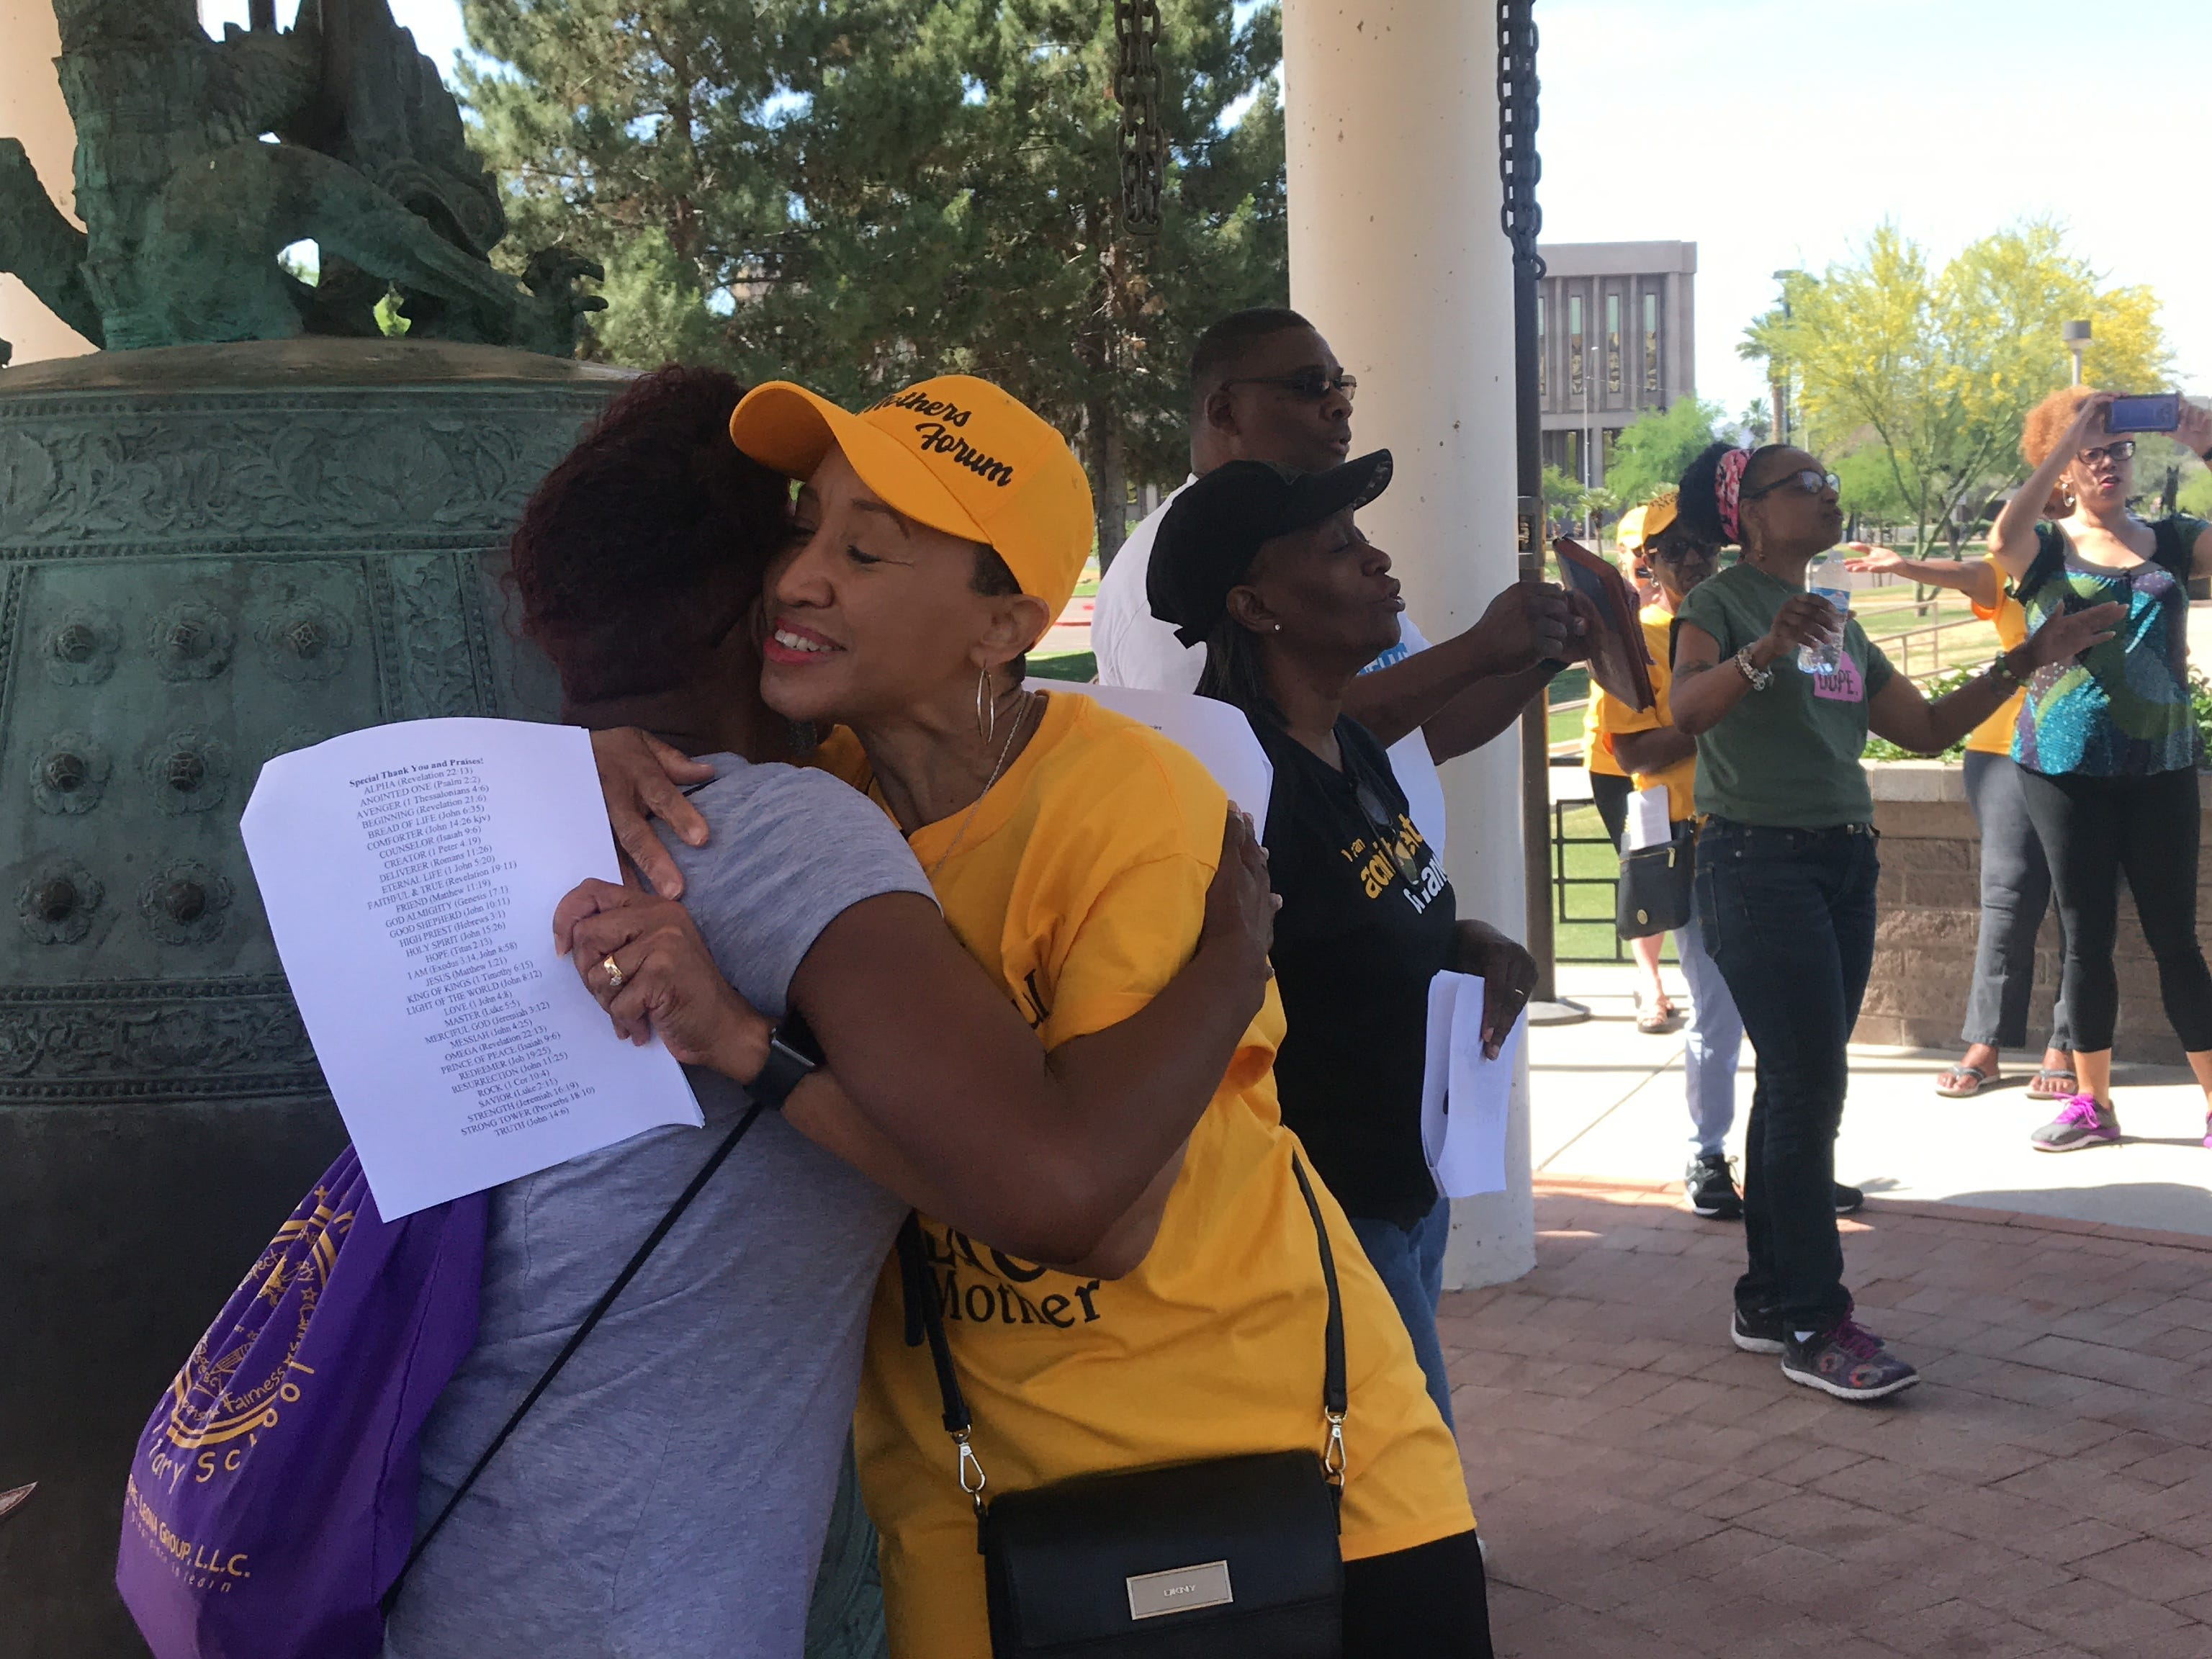 Janelle Wood (right) hugs a member of the Black Mothers Forum during a prayer march on May 11, 2019.